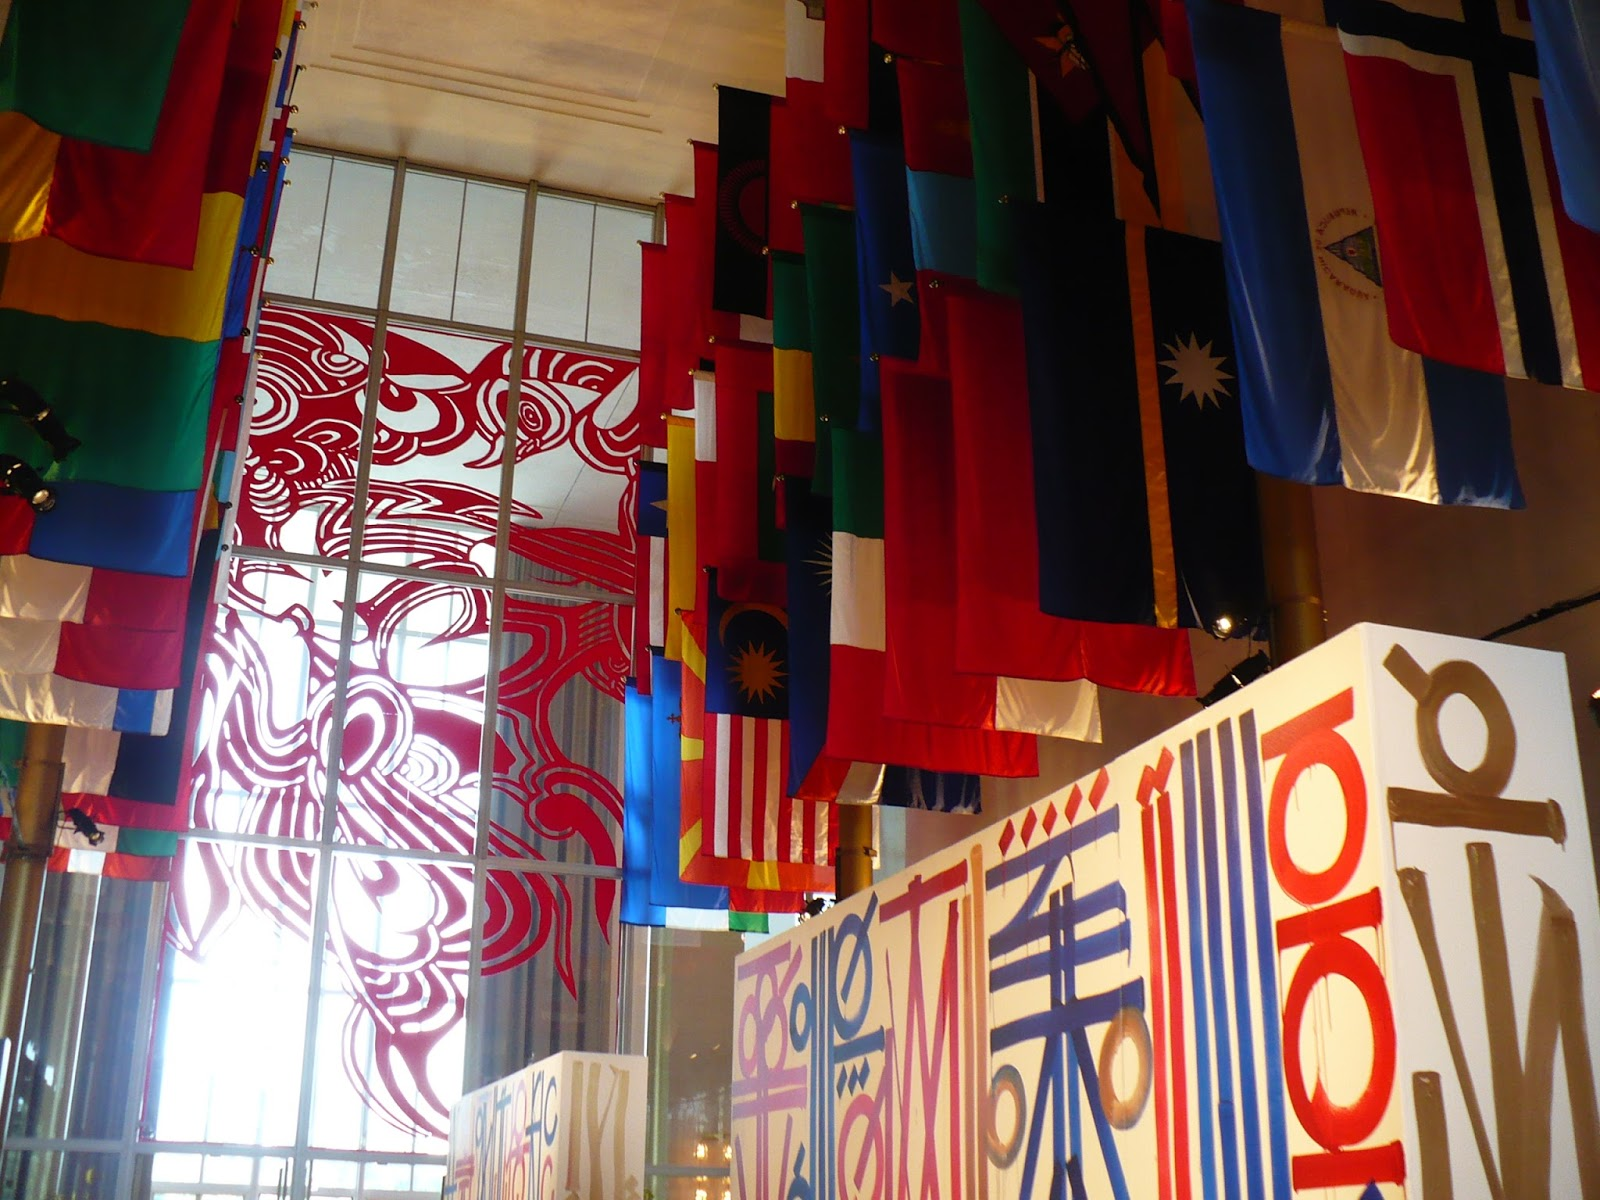 IN PERFORMANCE: display of artwork by RETNA in Kennedy Center's Hall of Nations in conjunction with Washington National Opera's production of Giuseppe Verdi's AIDA, September 2017 [Photo by the author]